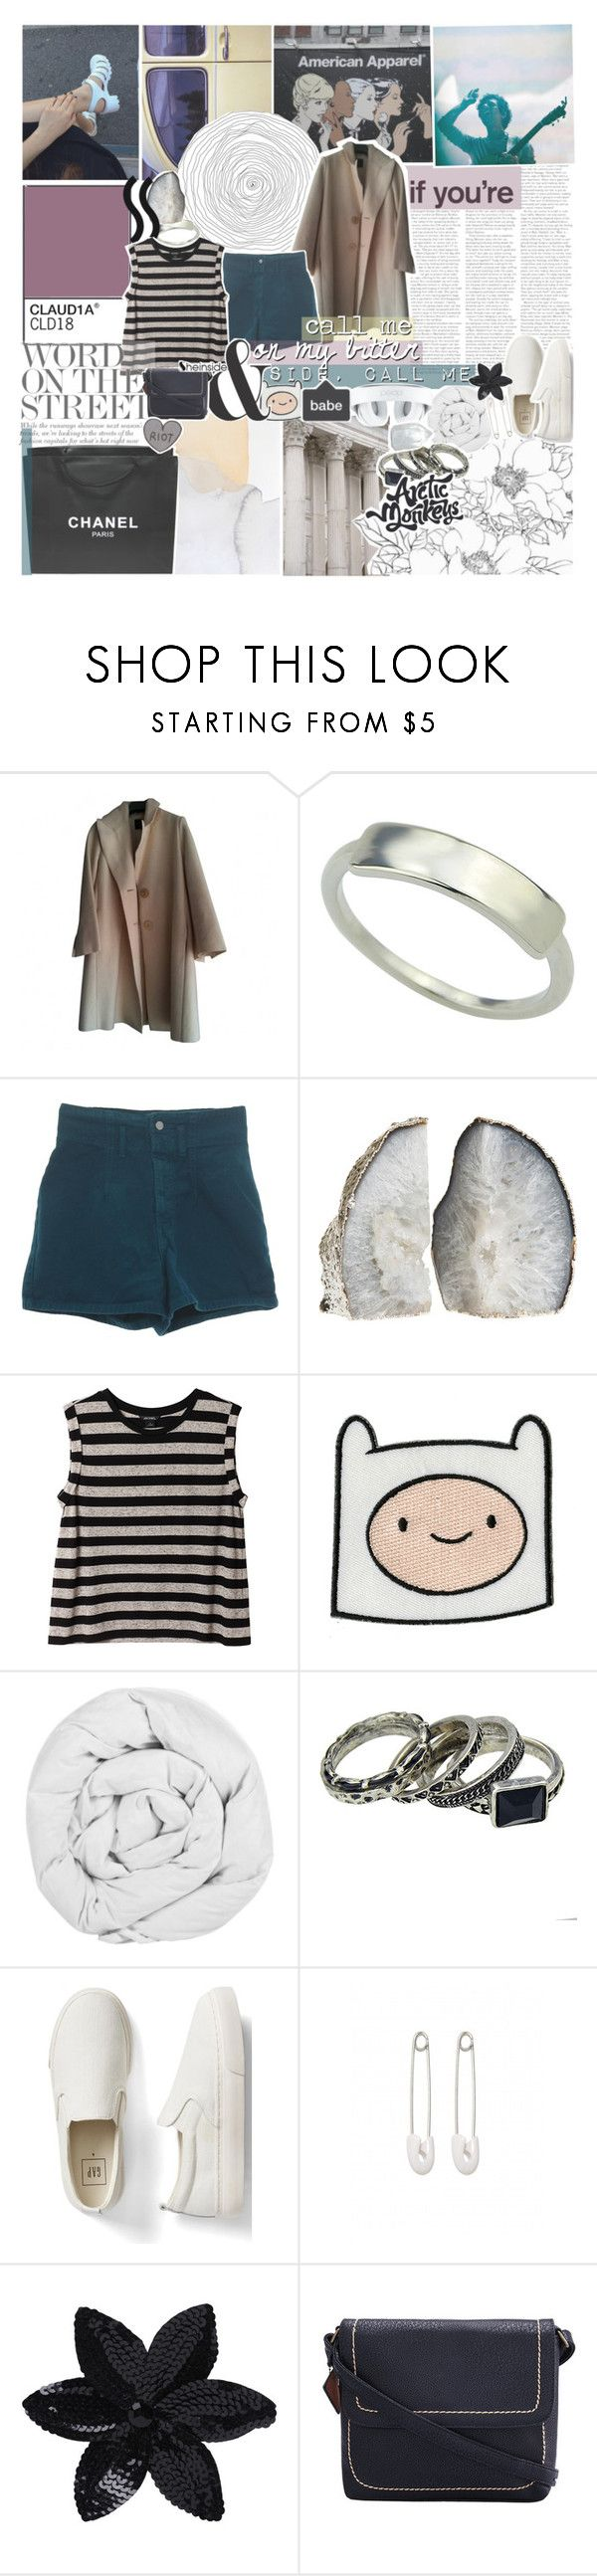 """""""i was searching for some better time"""" by kristen-gregory-sexy-sports-babe ❤ liked on Polyvore featuring Chanel, Isabel Marant, Monki, The Fine Bedding Company, Gap, Kristin Cavallari, ASOS and vintage"""